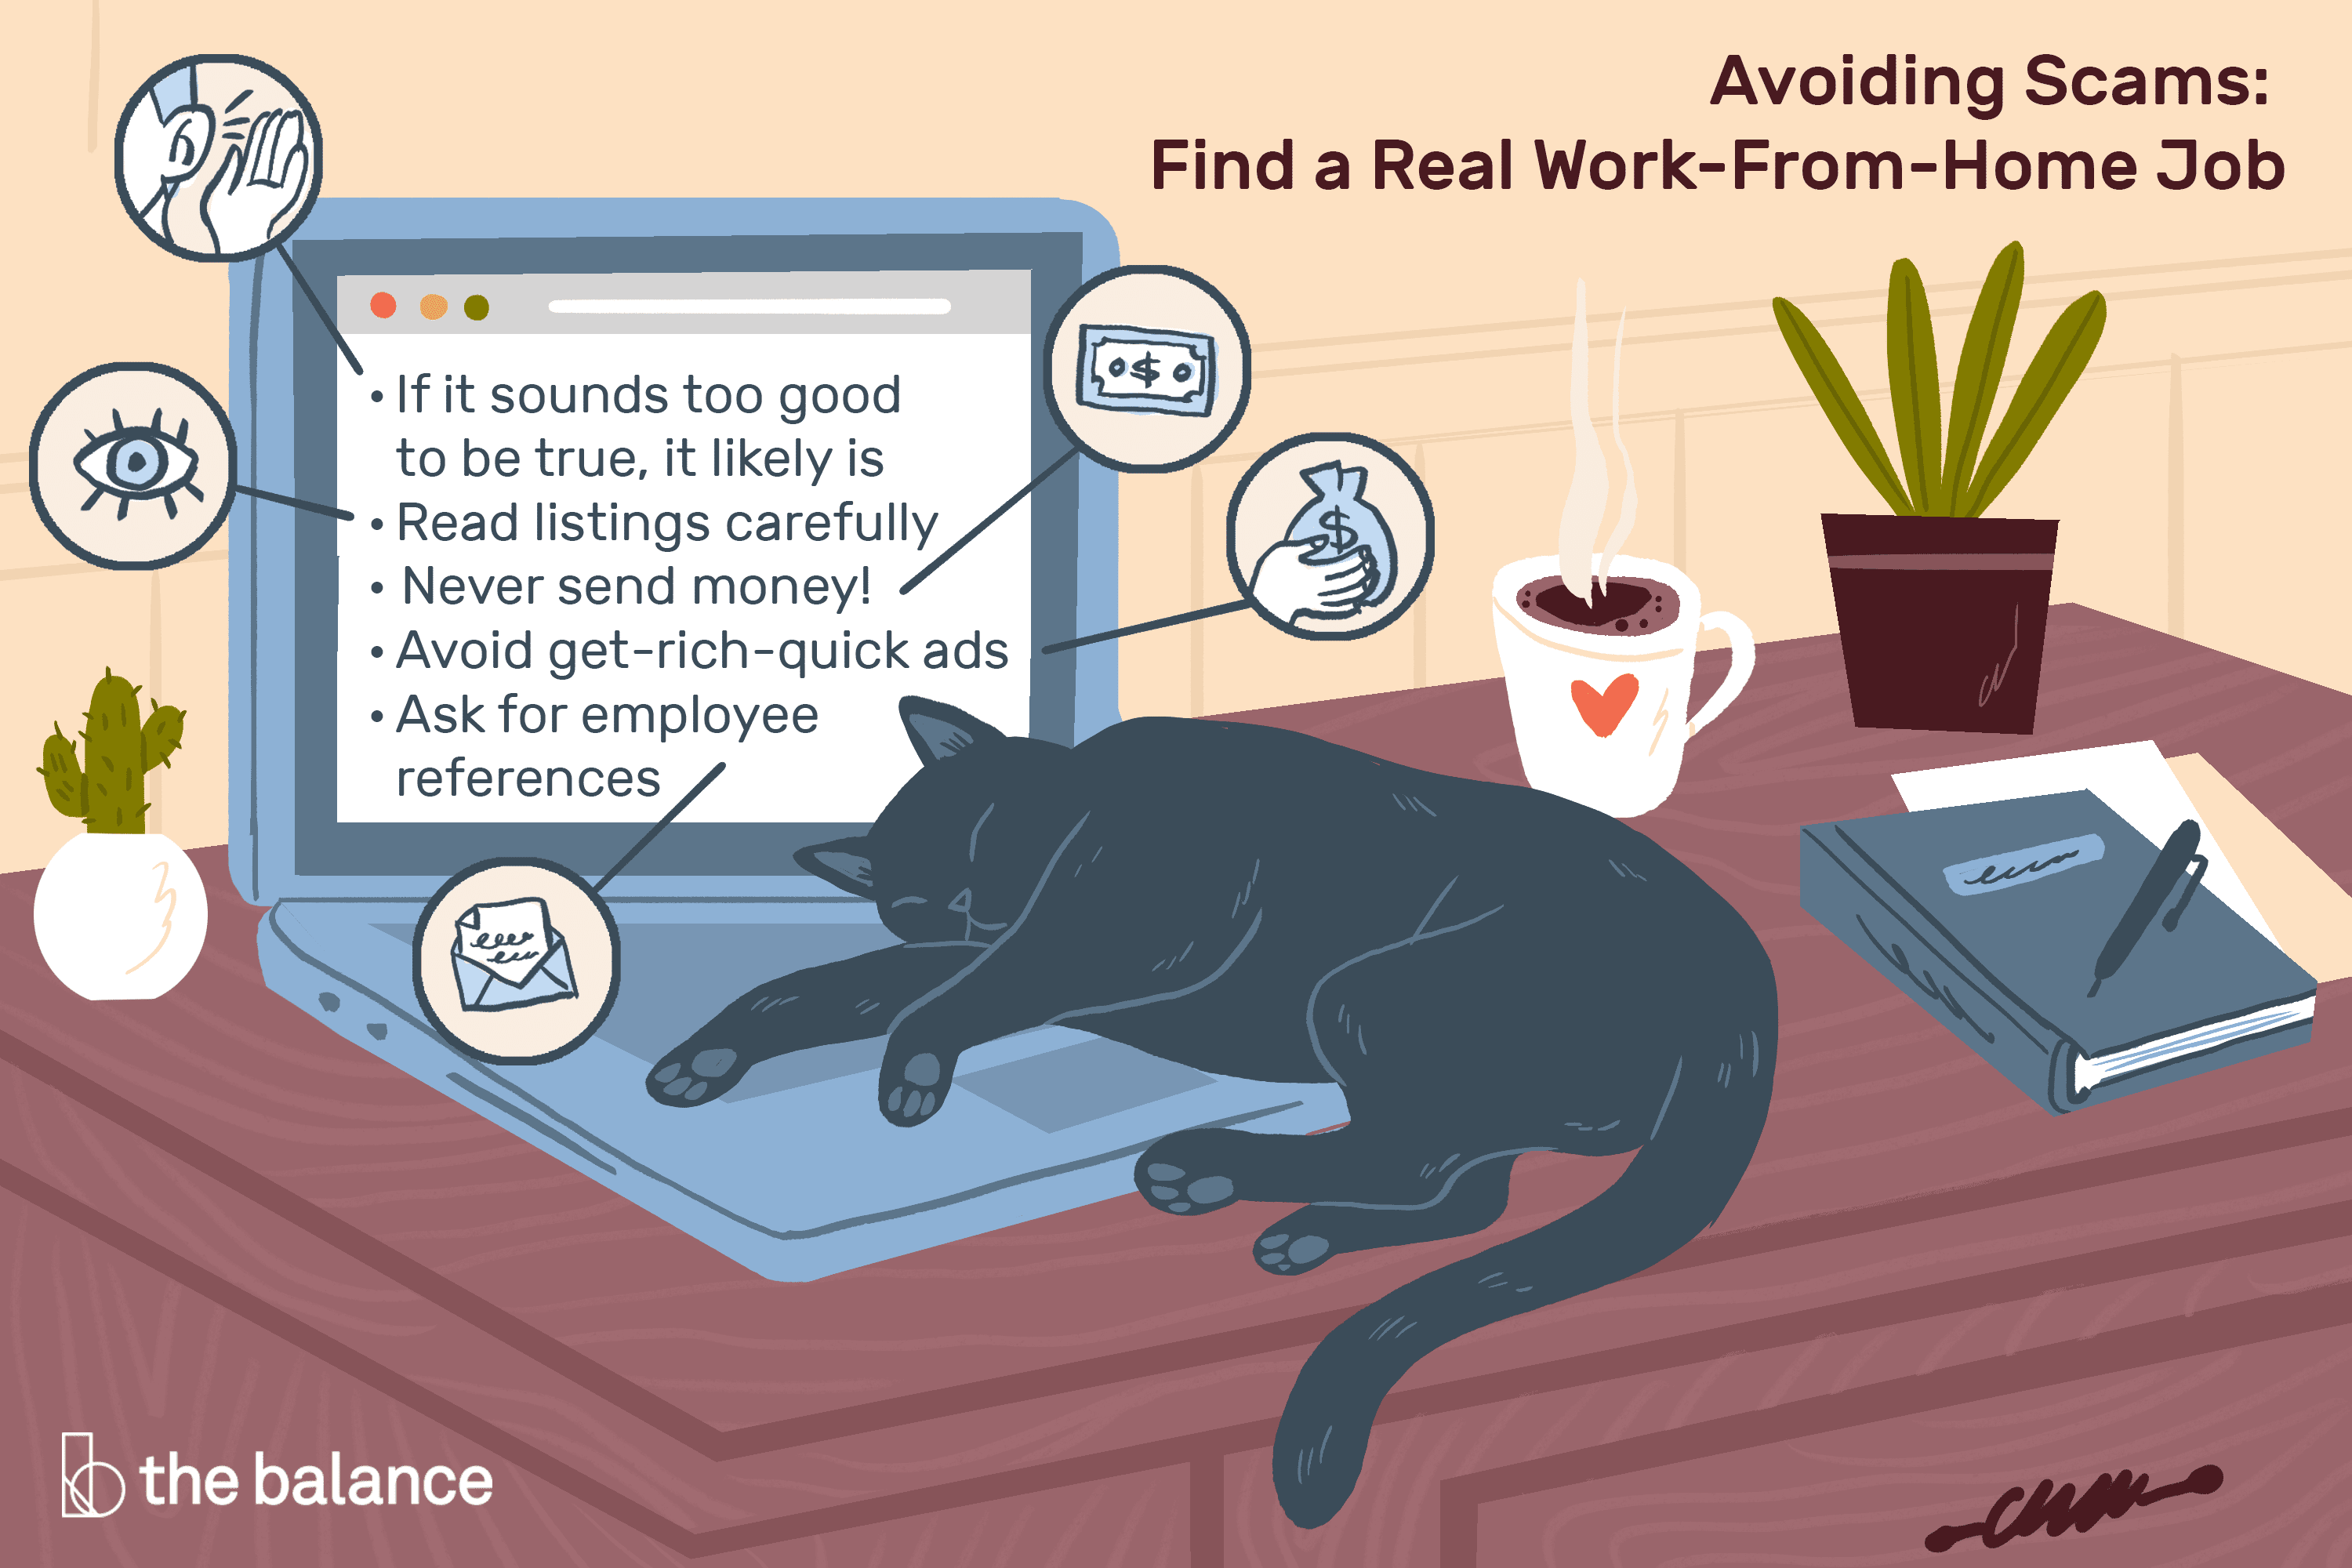 How to Find Real Work at Home Jobs